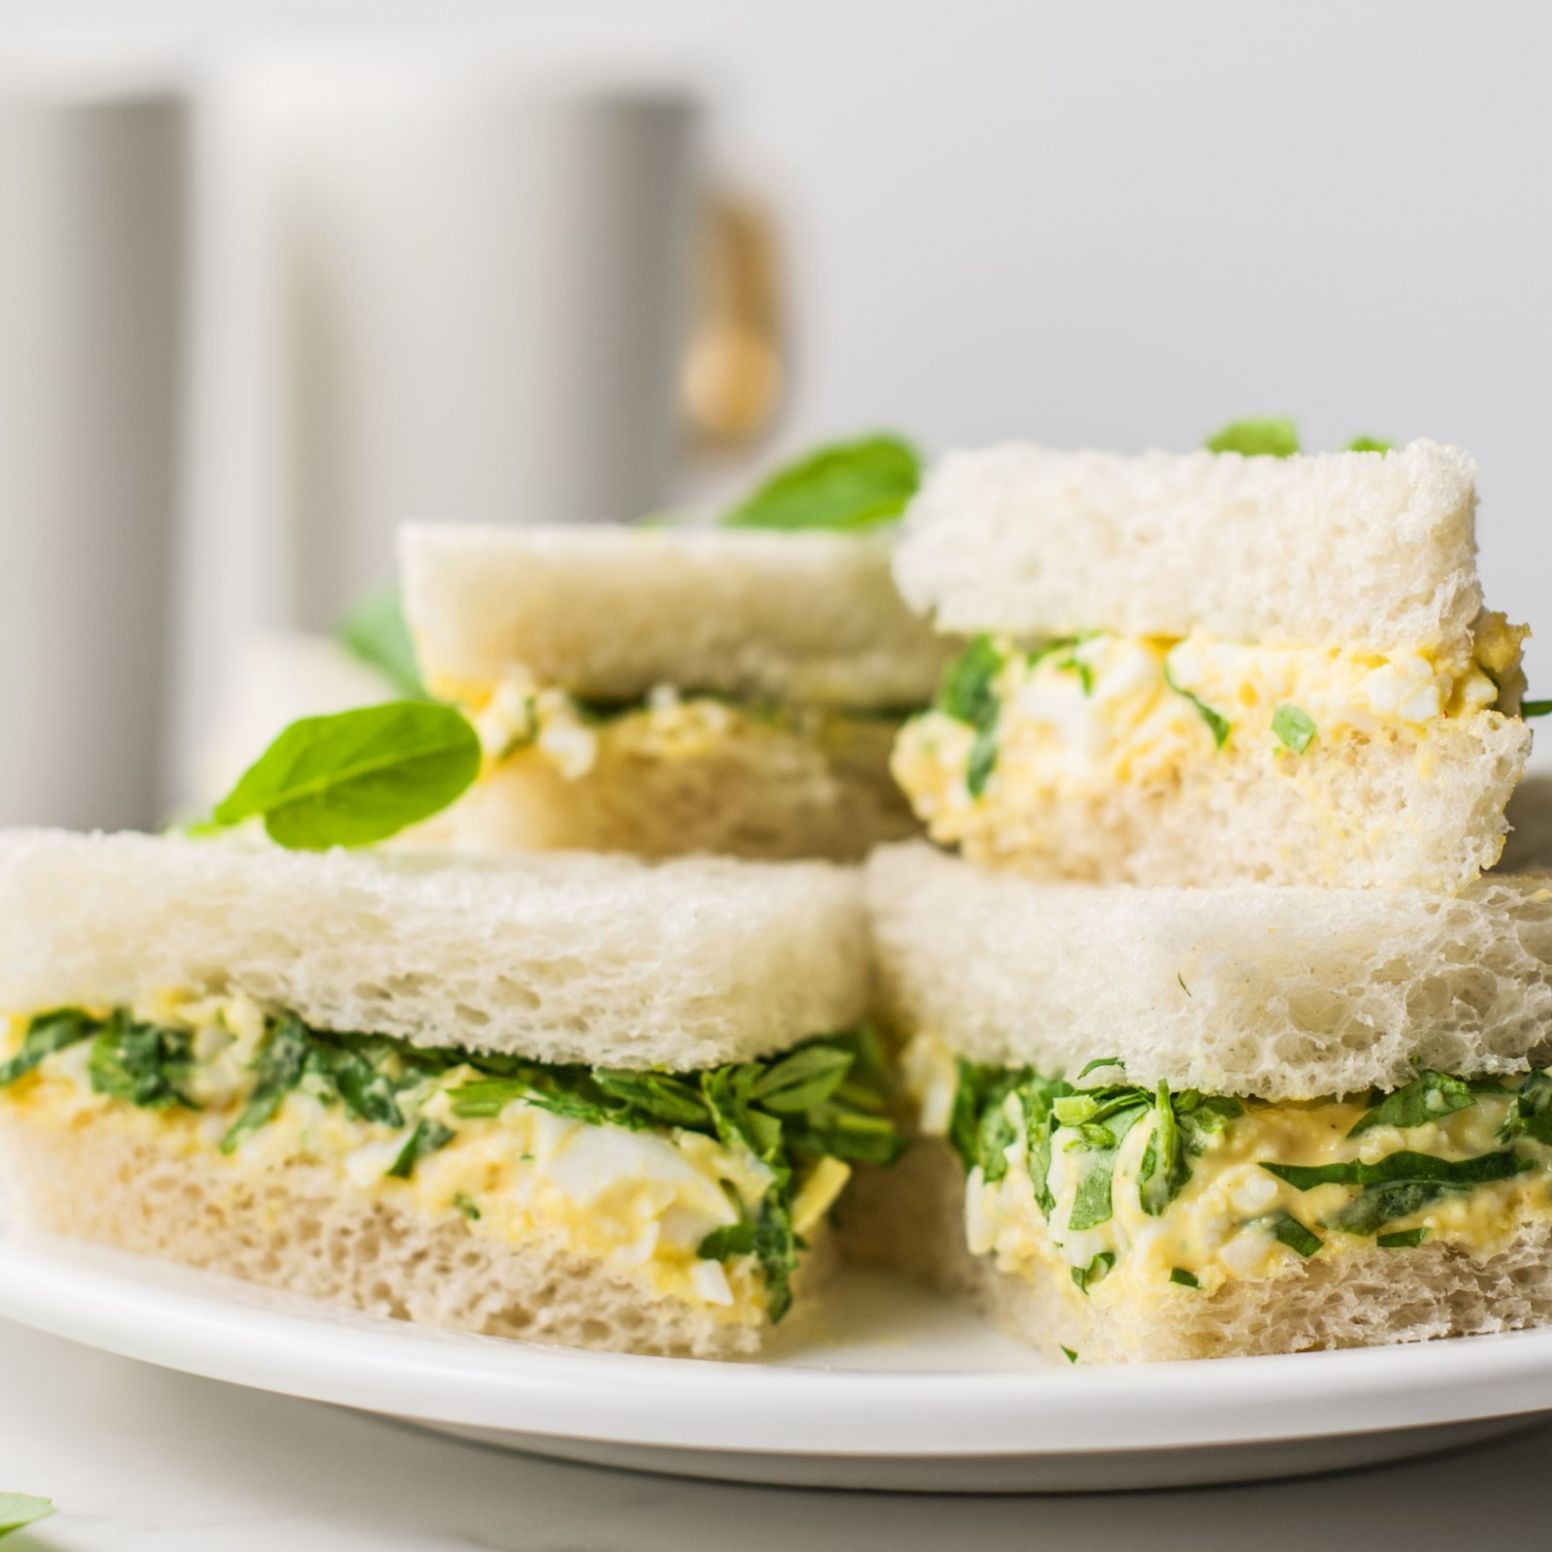 Salmon and Soft Cheese Sandwich Recipe - The Oxford Magazine - Sandwich Recipe Notes